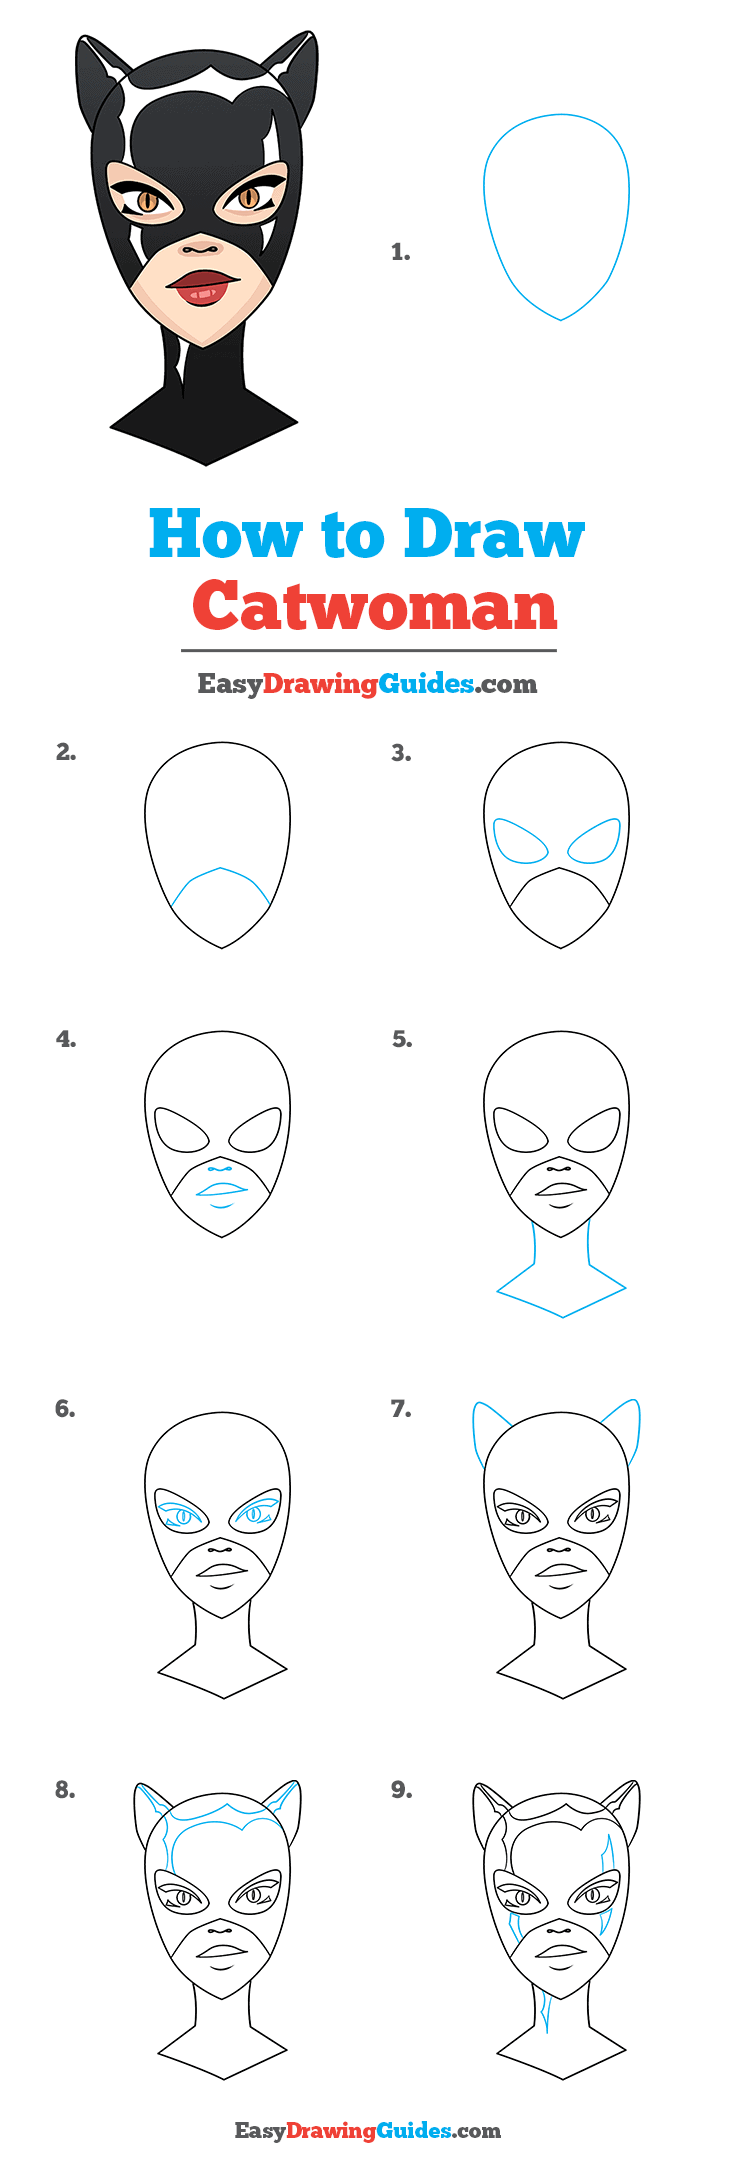 How to Draw Catwoman